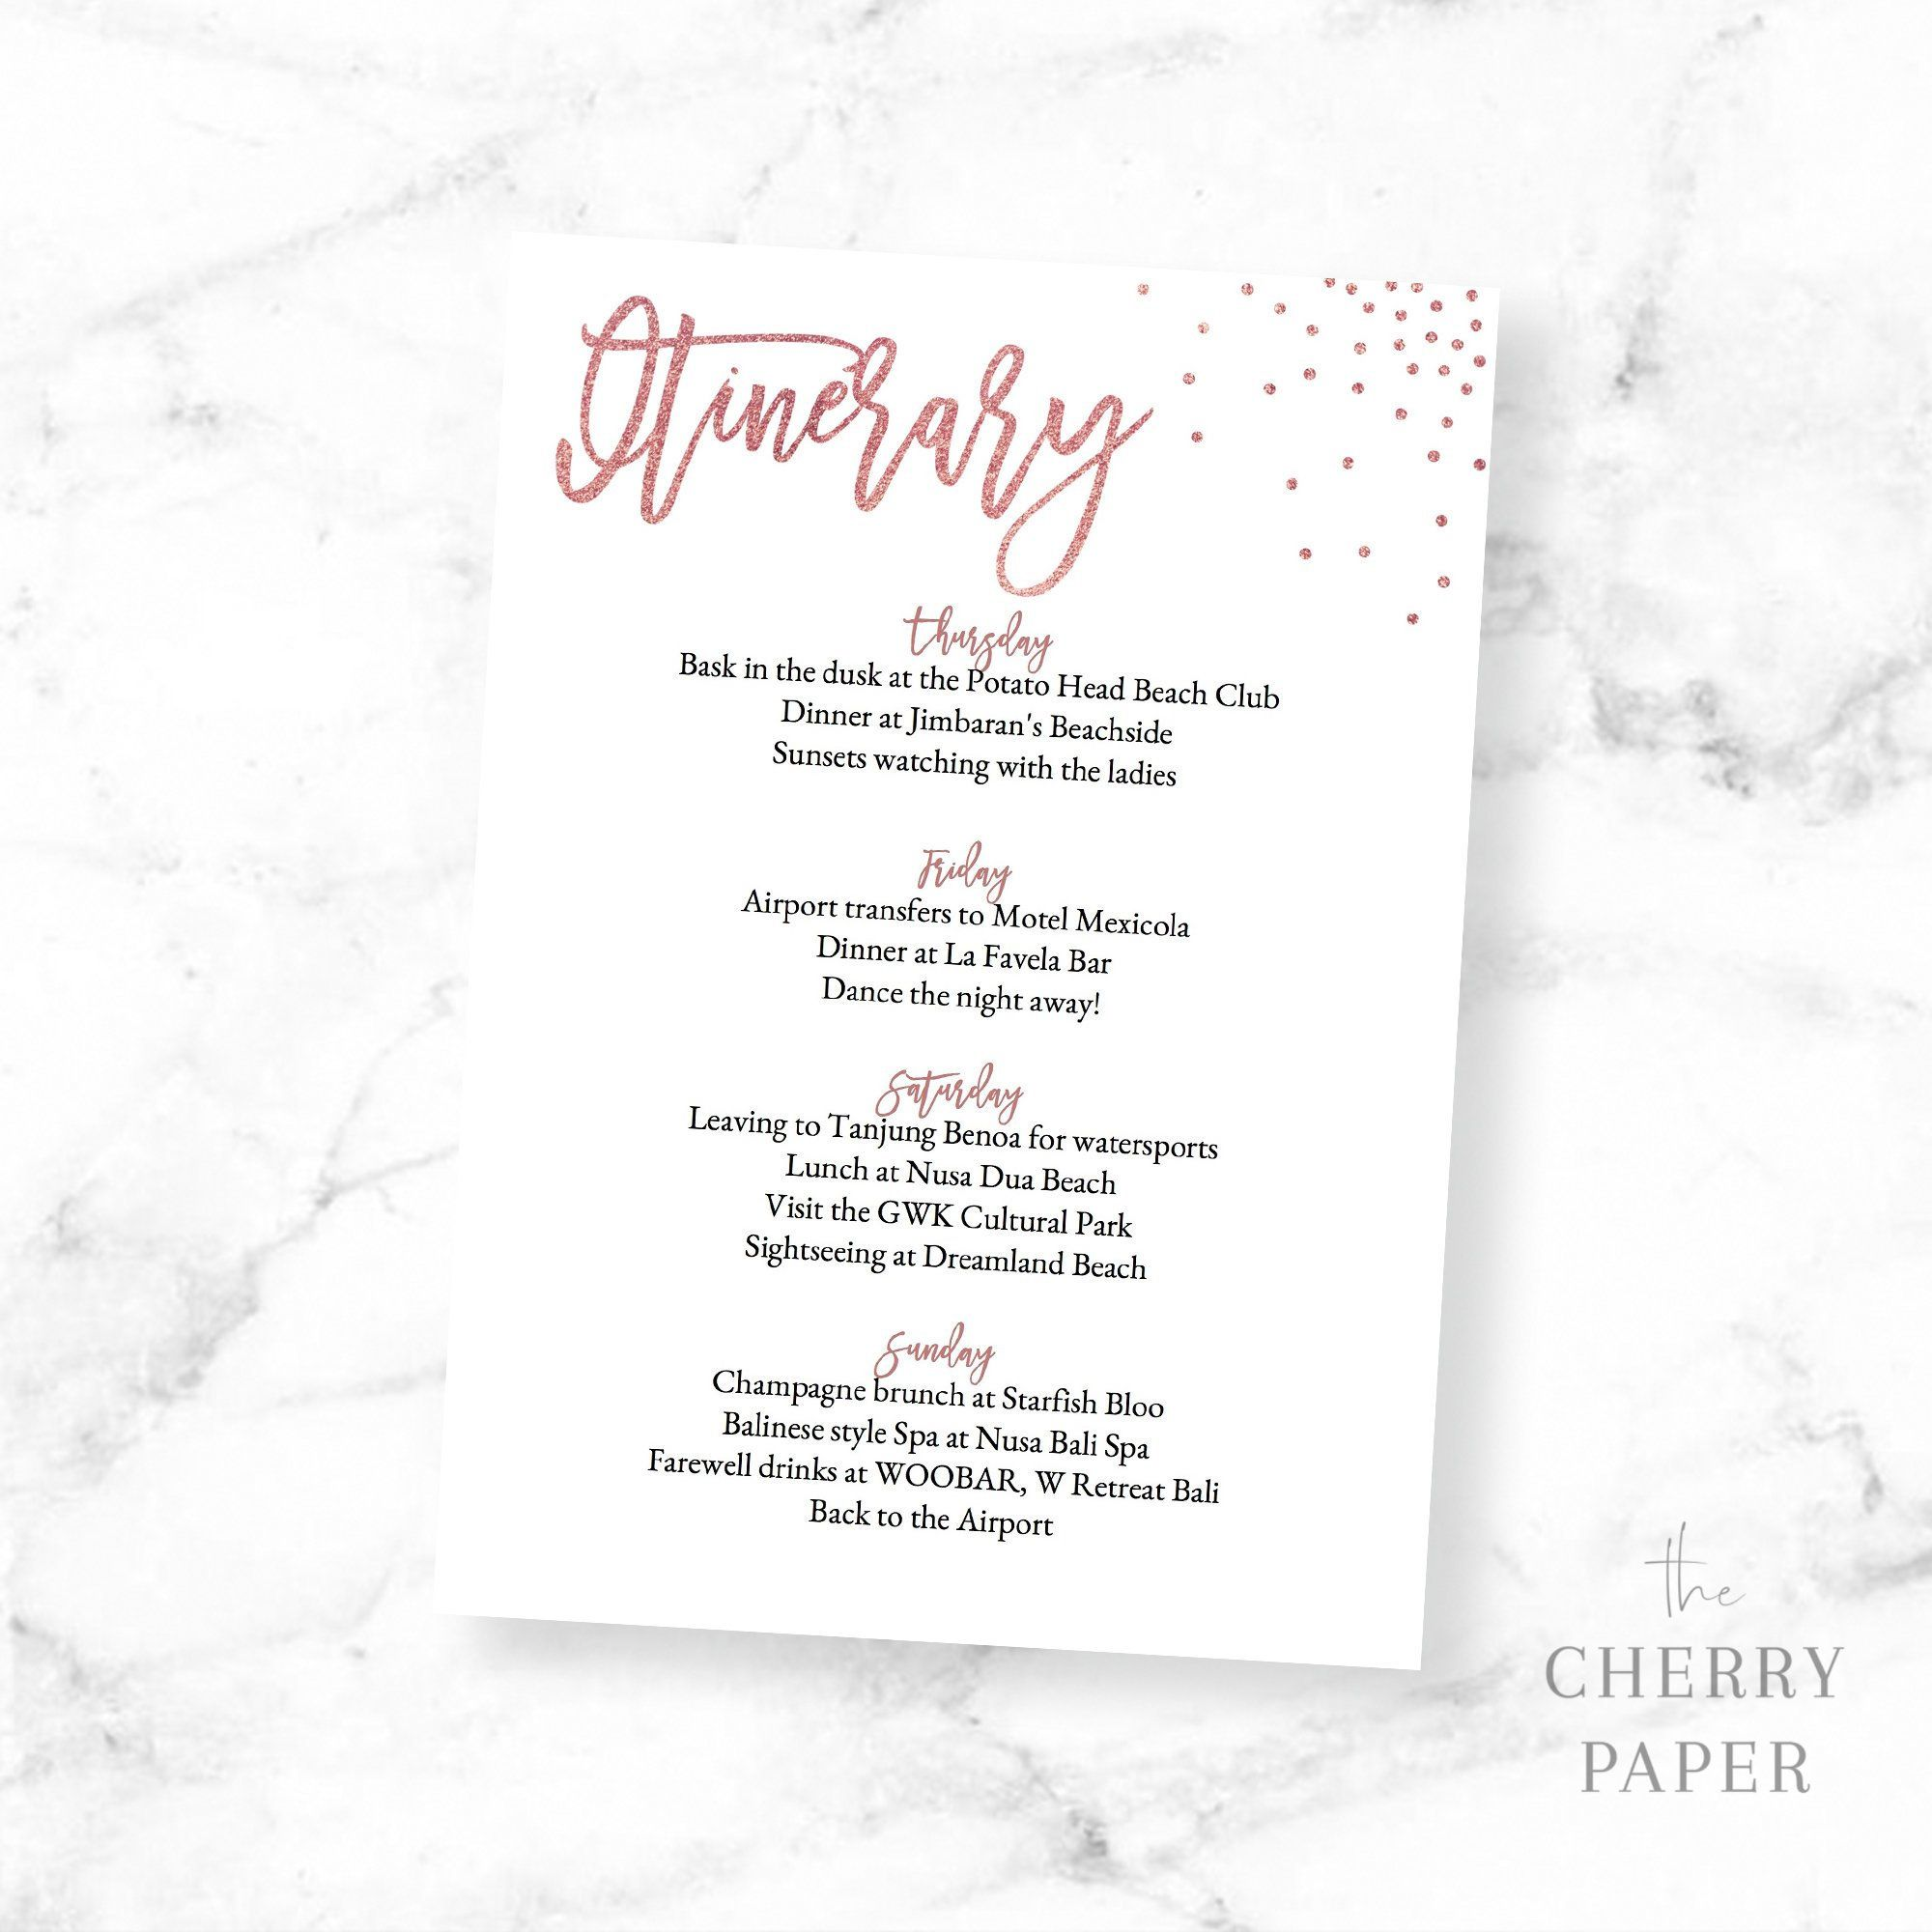 4 Day Itinerary Card Itinerary Template Rose Gold Editable Etsy Itinerary Template Diy Party Printables Editable Invitations